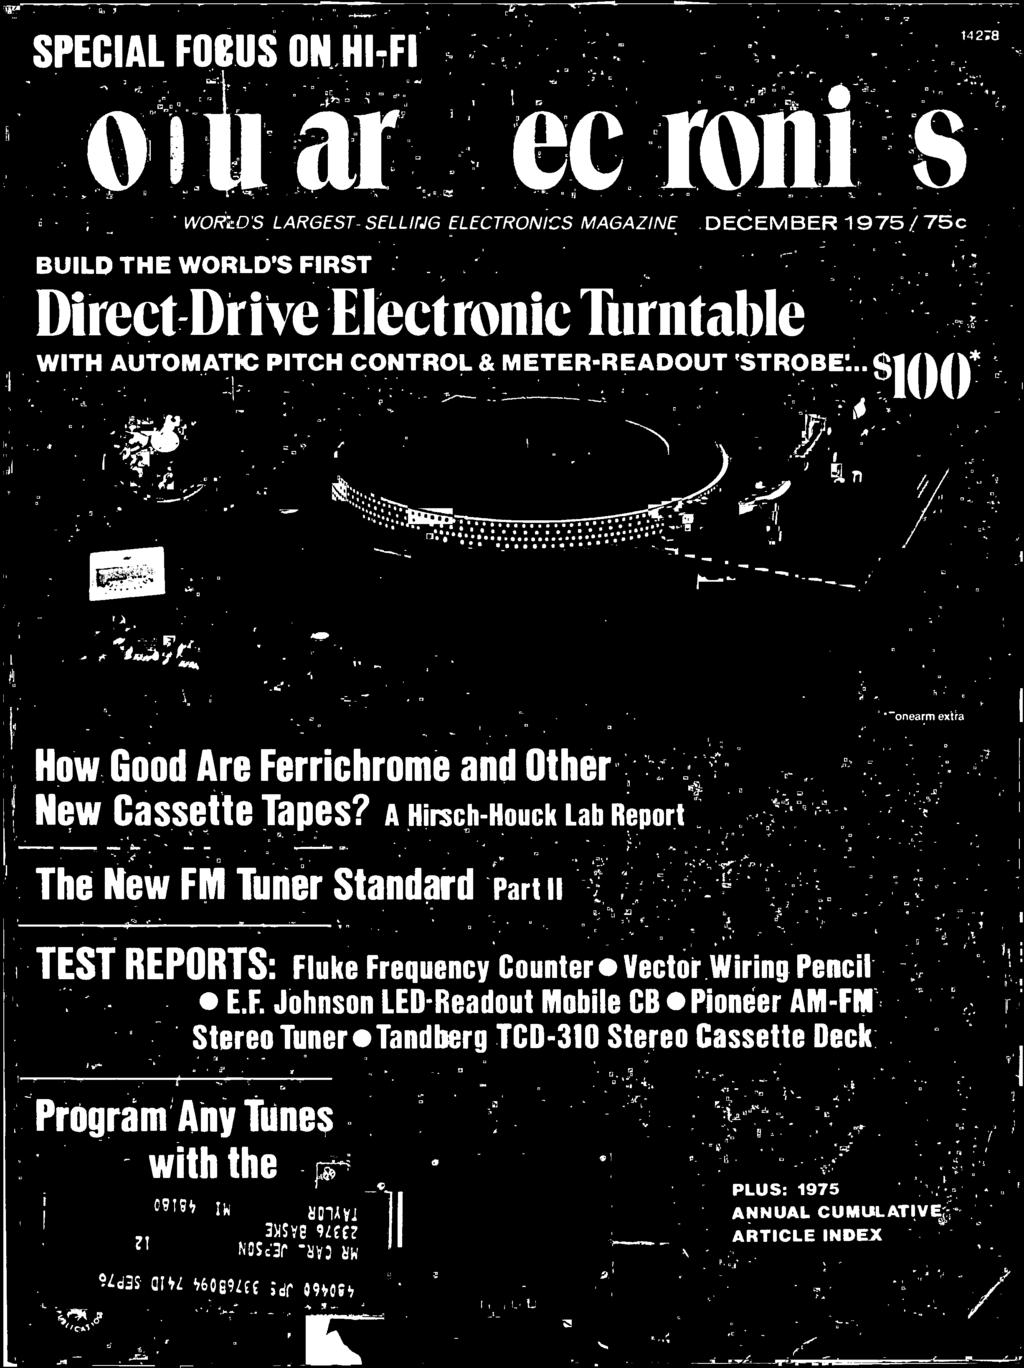 Build The Worlds First Direct Drive Electronic Turntable With Meters Scanners Circuit Breaker Finders Sperry Finder Wiring Pencil Ef